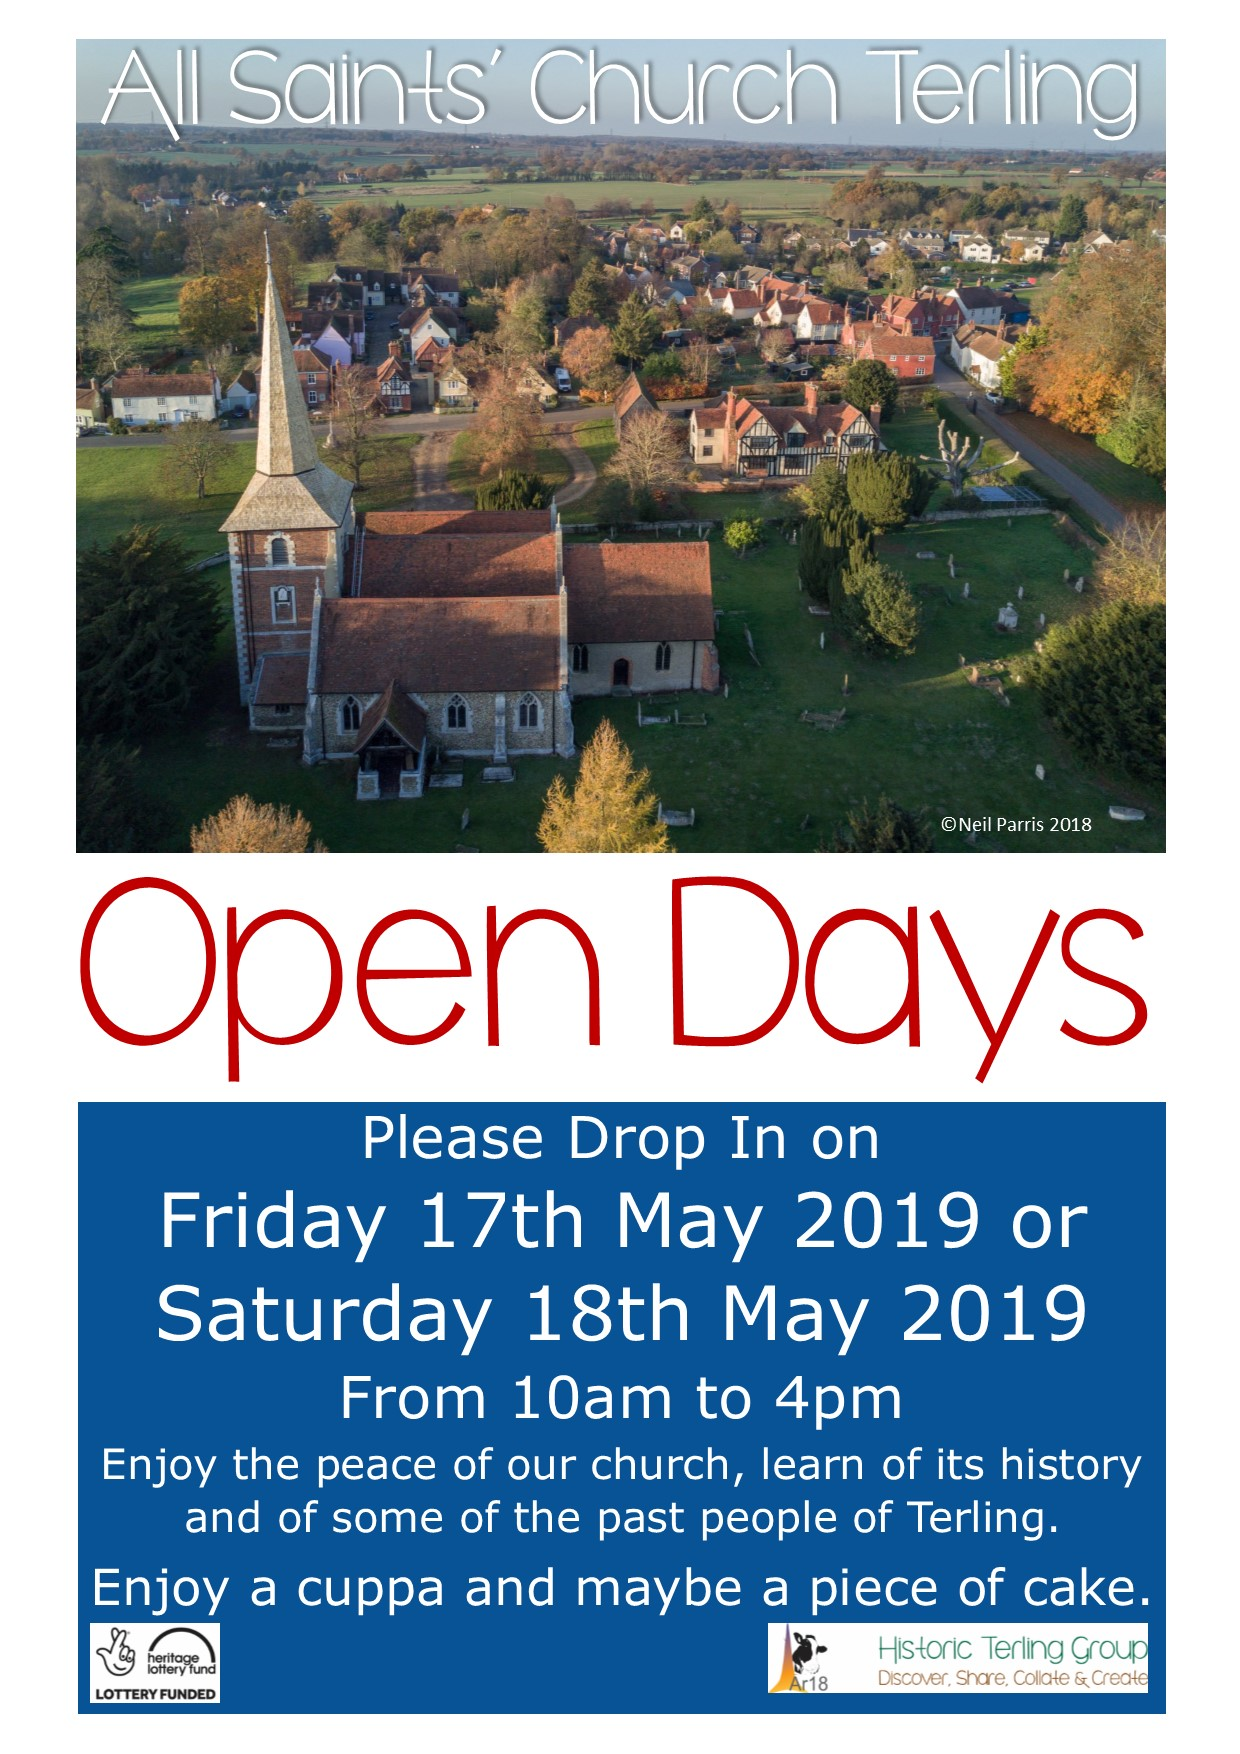 All Saints' Terling Open Days